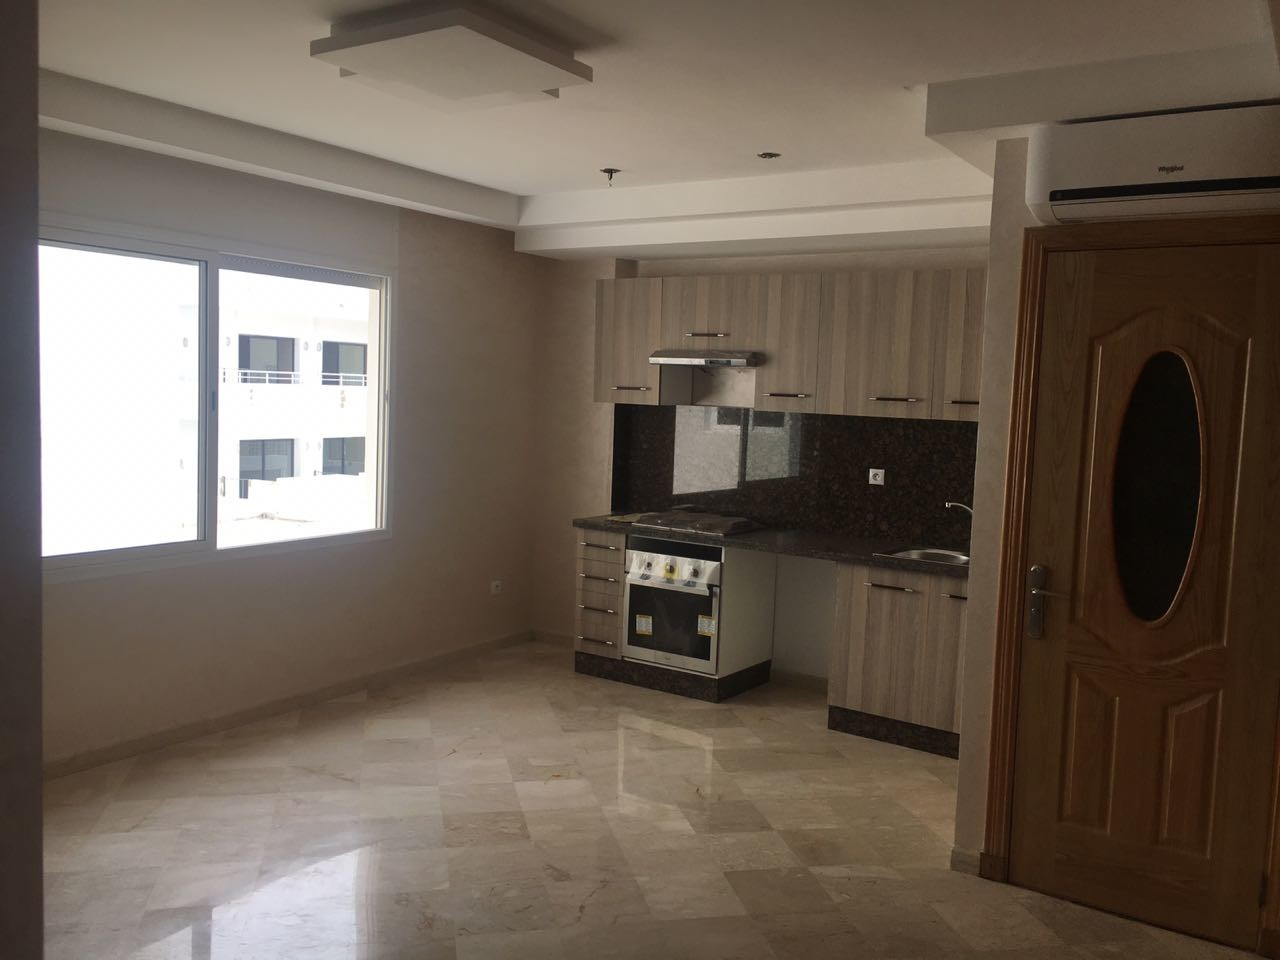 Location <strong>Appartement</strong> Rabat Agdal <strong>40 m2</strong>